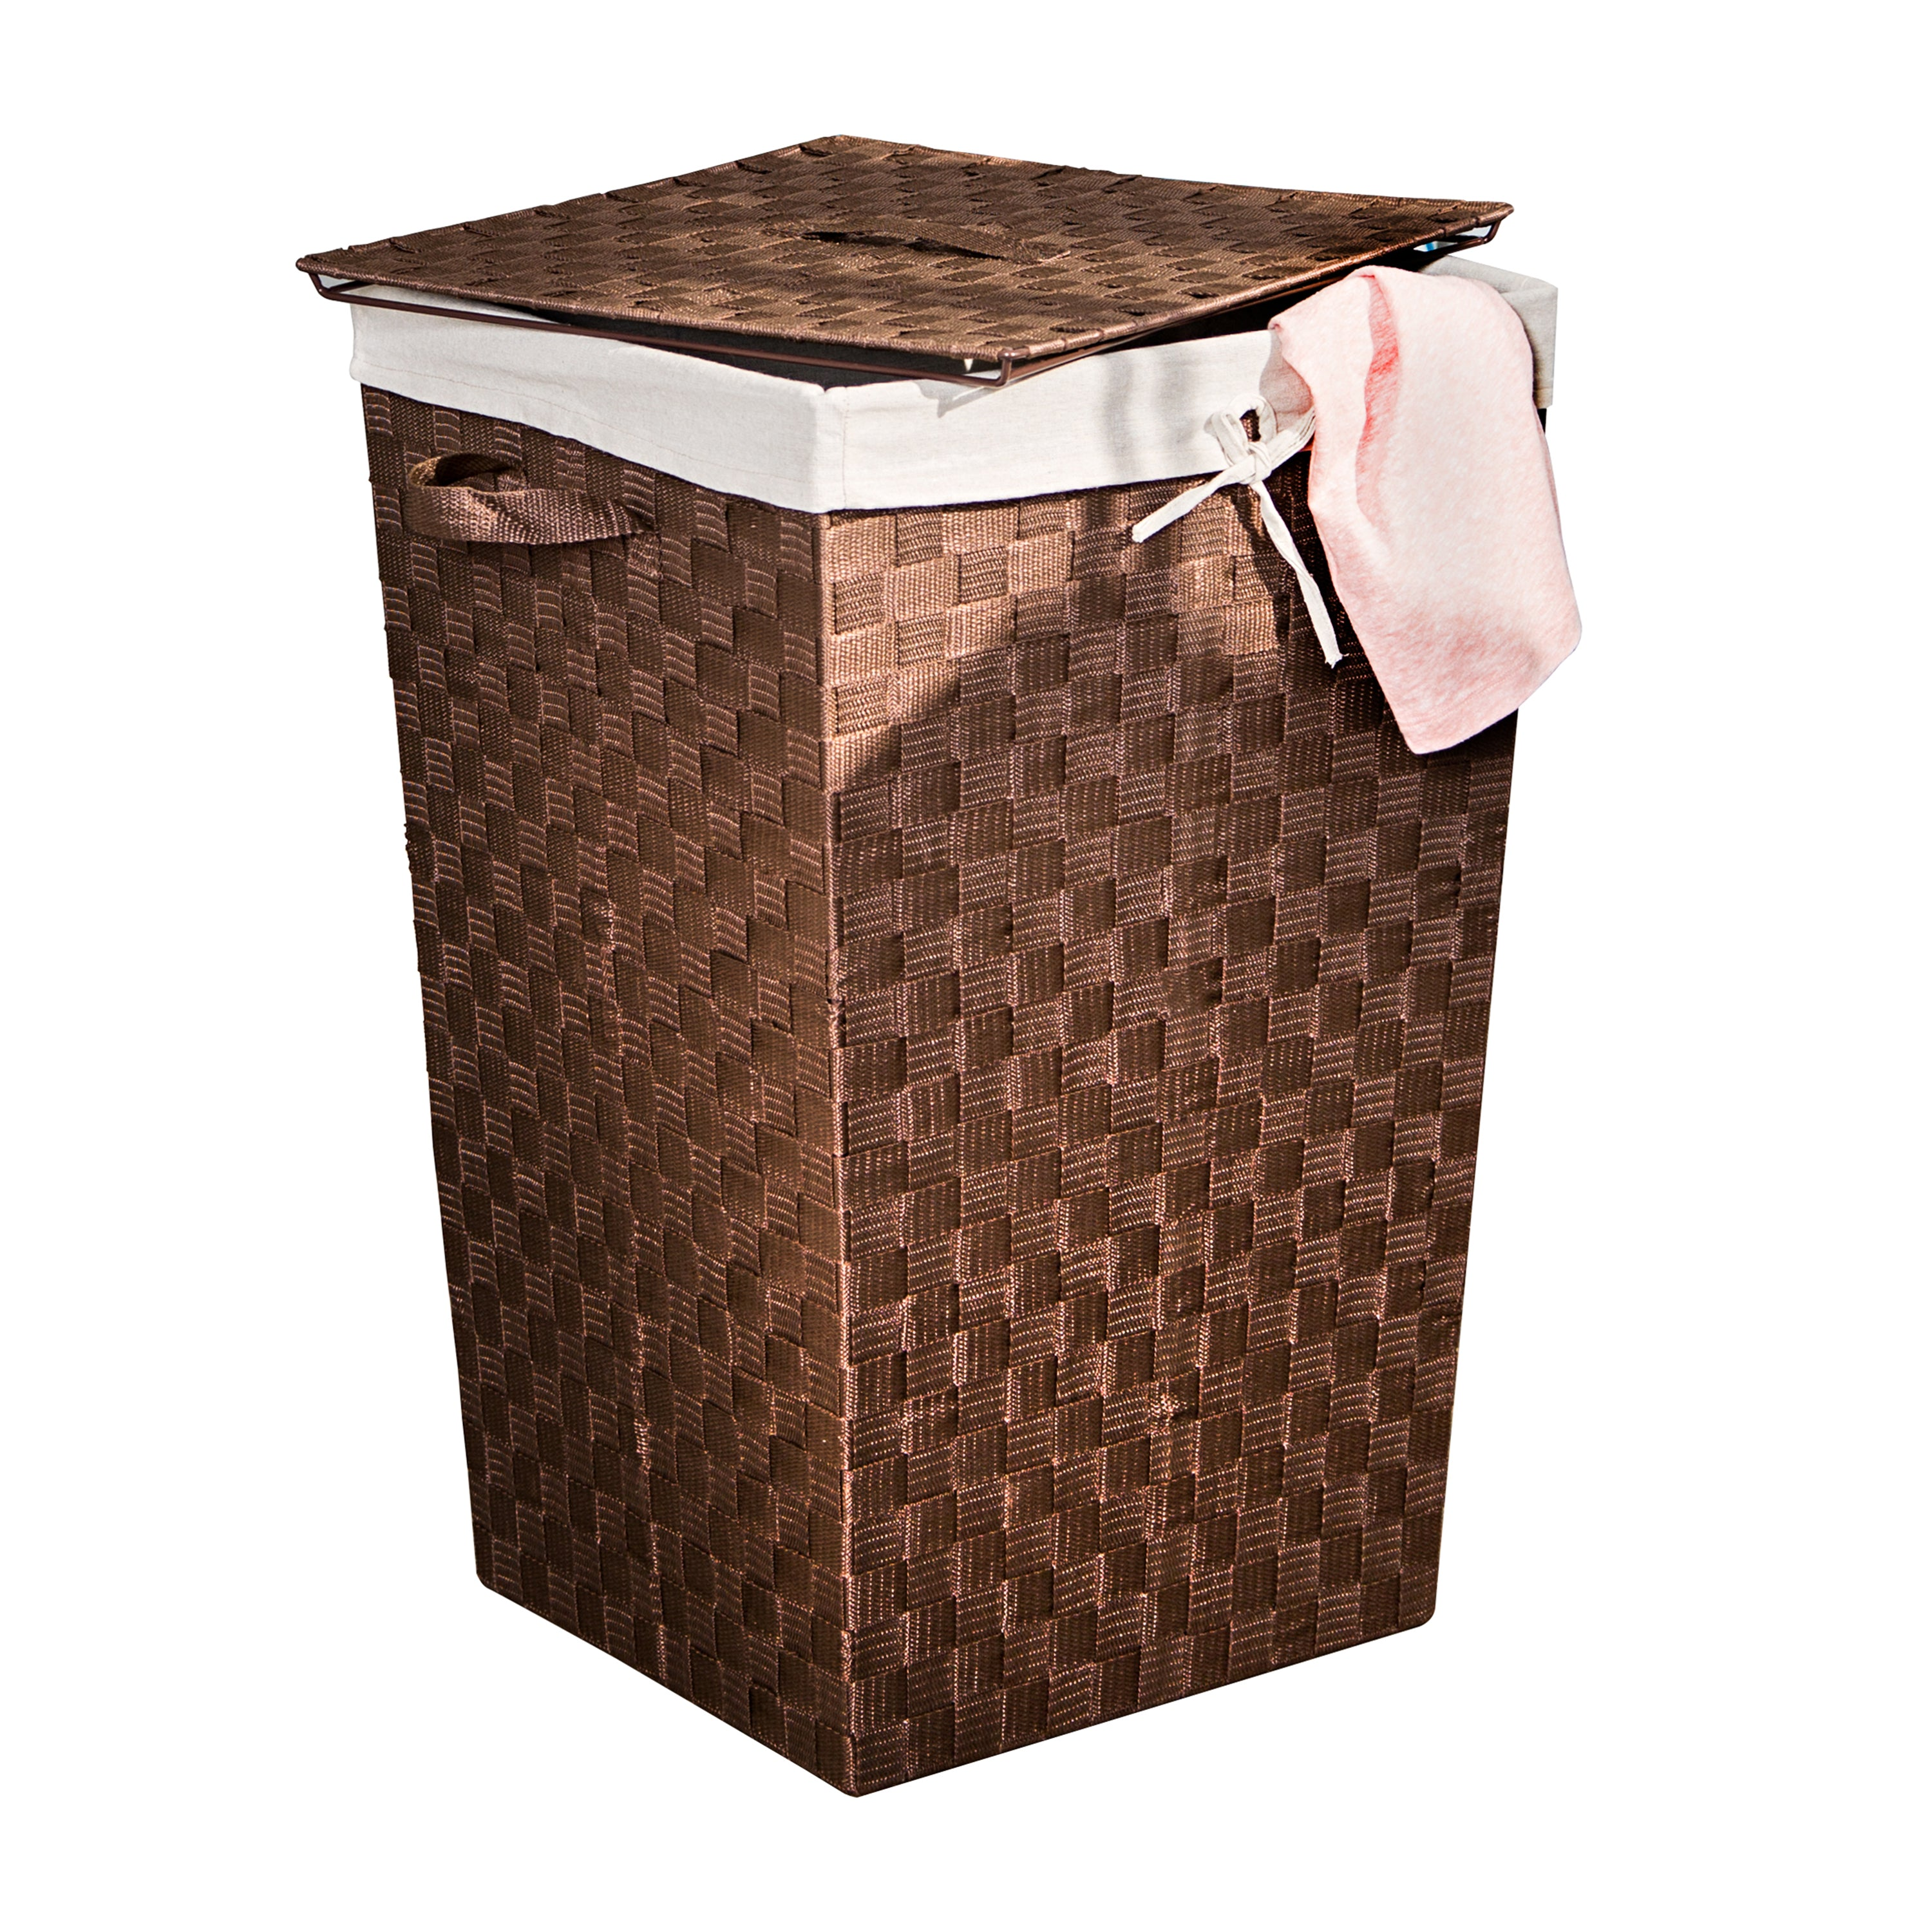 Decorative Woven Hamper With Lid Java Brown